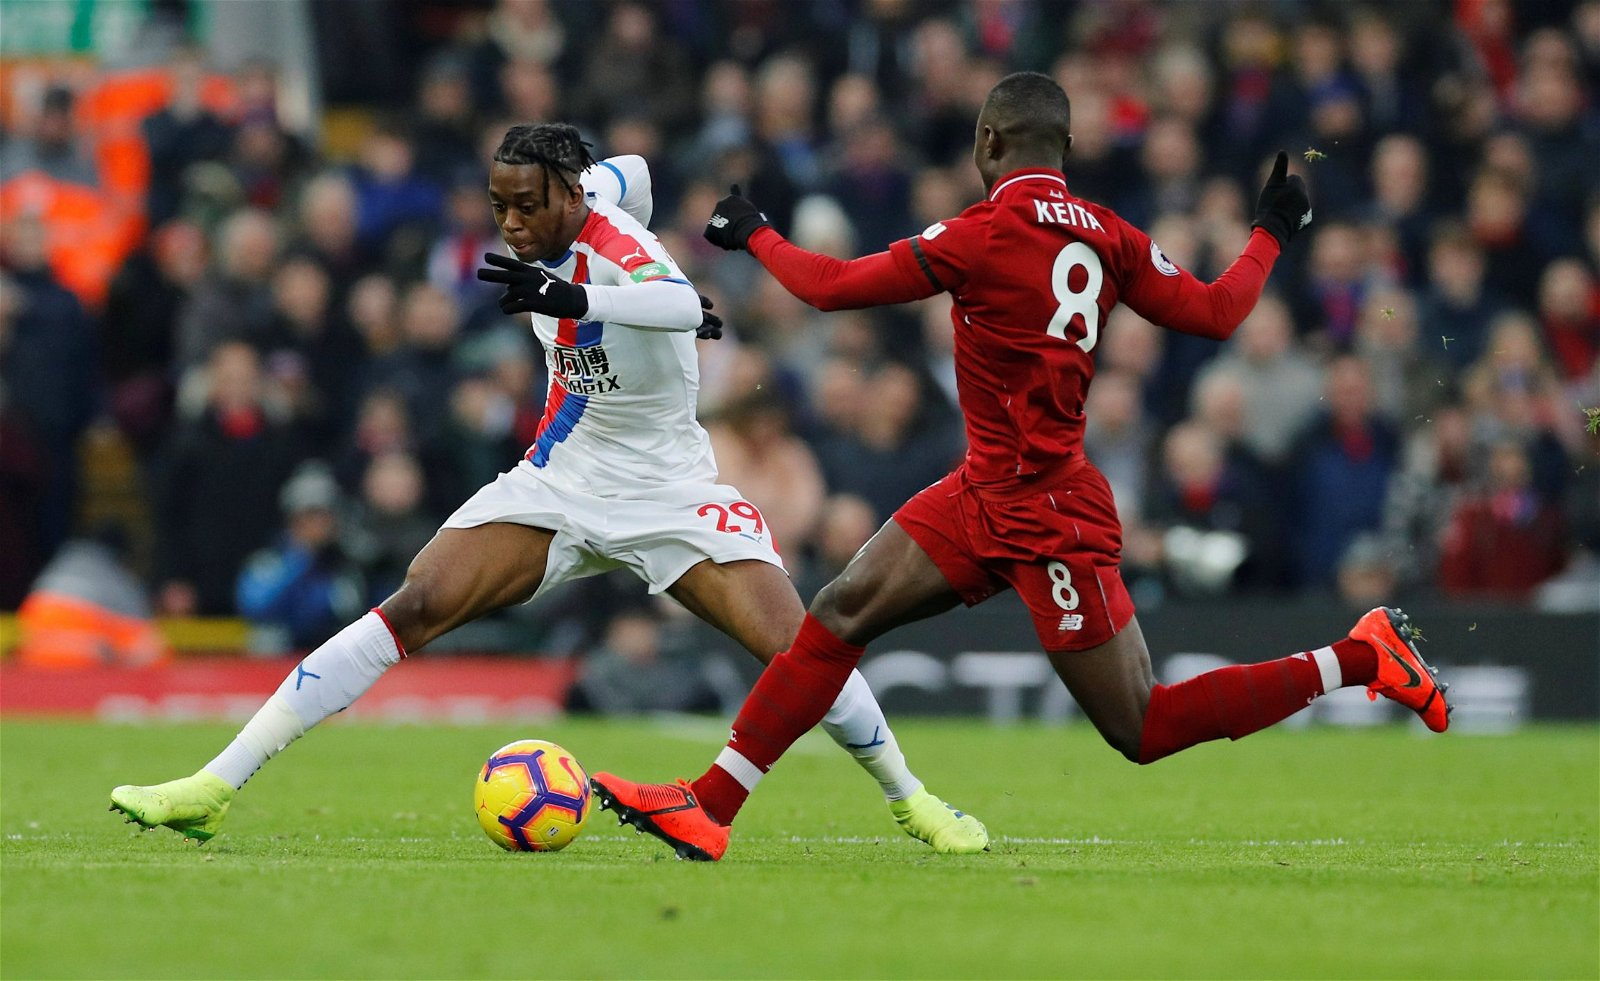 Keita in action against Crystal Palace